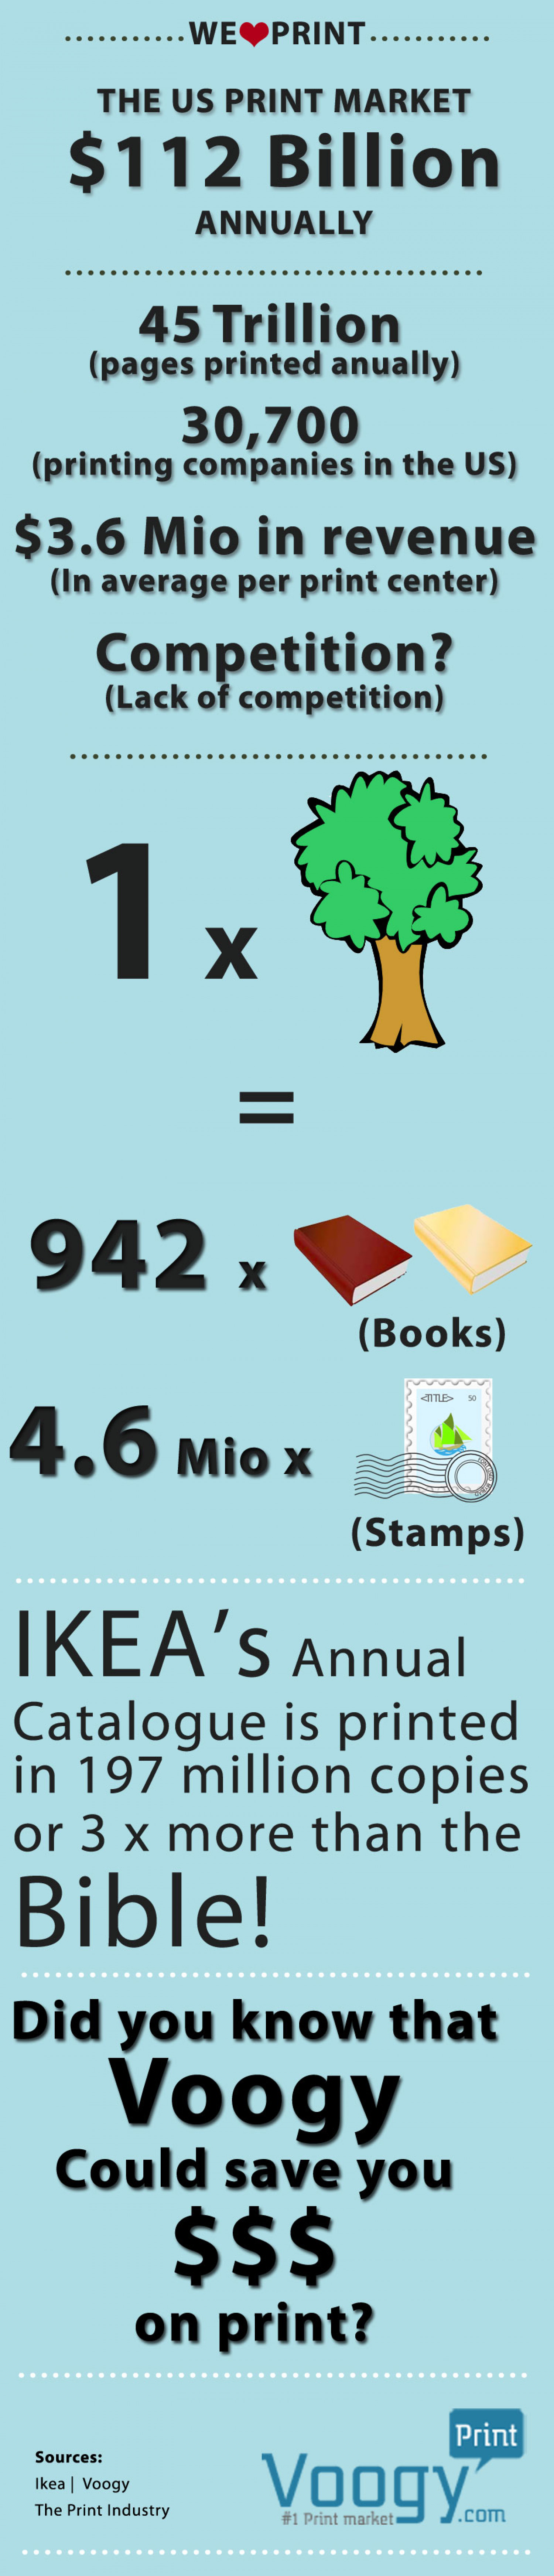 The US Print market Infographic